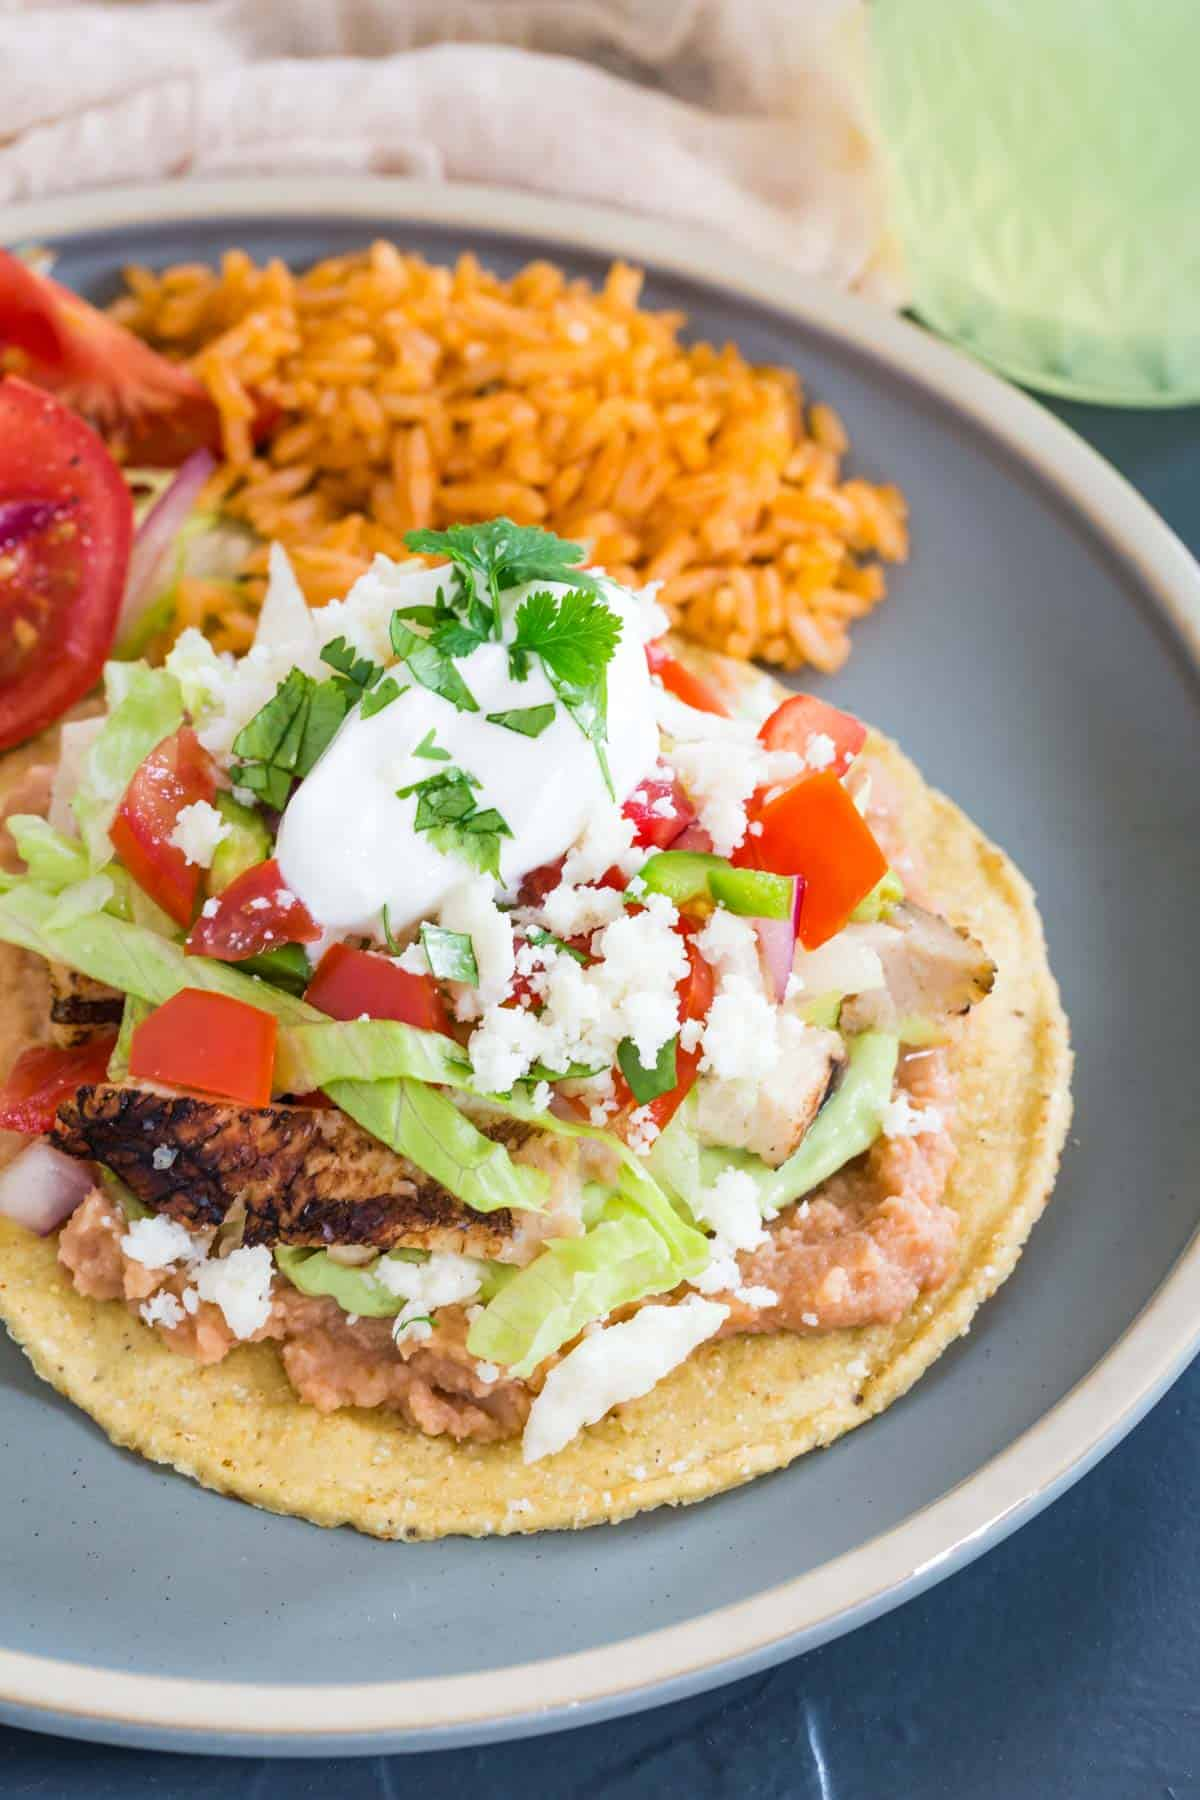 a chicken tostada with refried beans, lettuce, salsa, cheese, and sour cream served on a blue plate with mexican rice